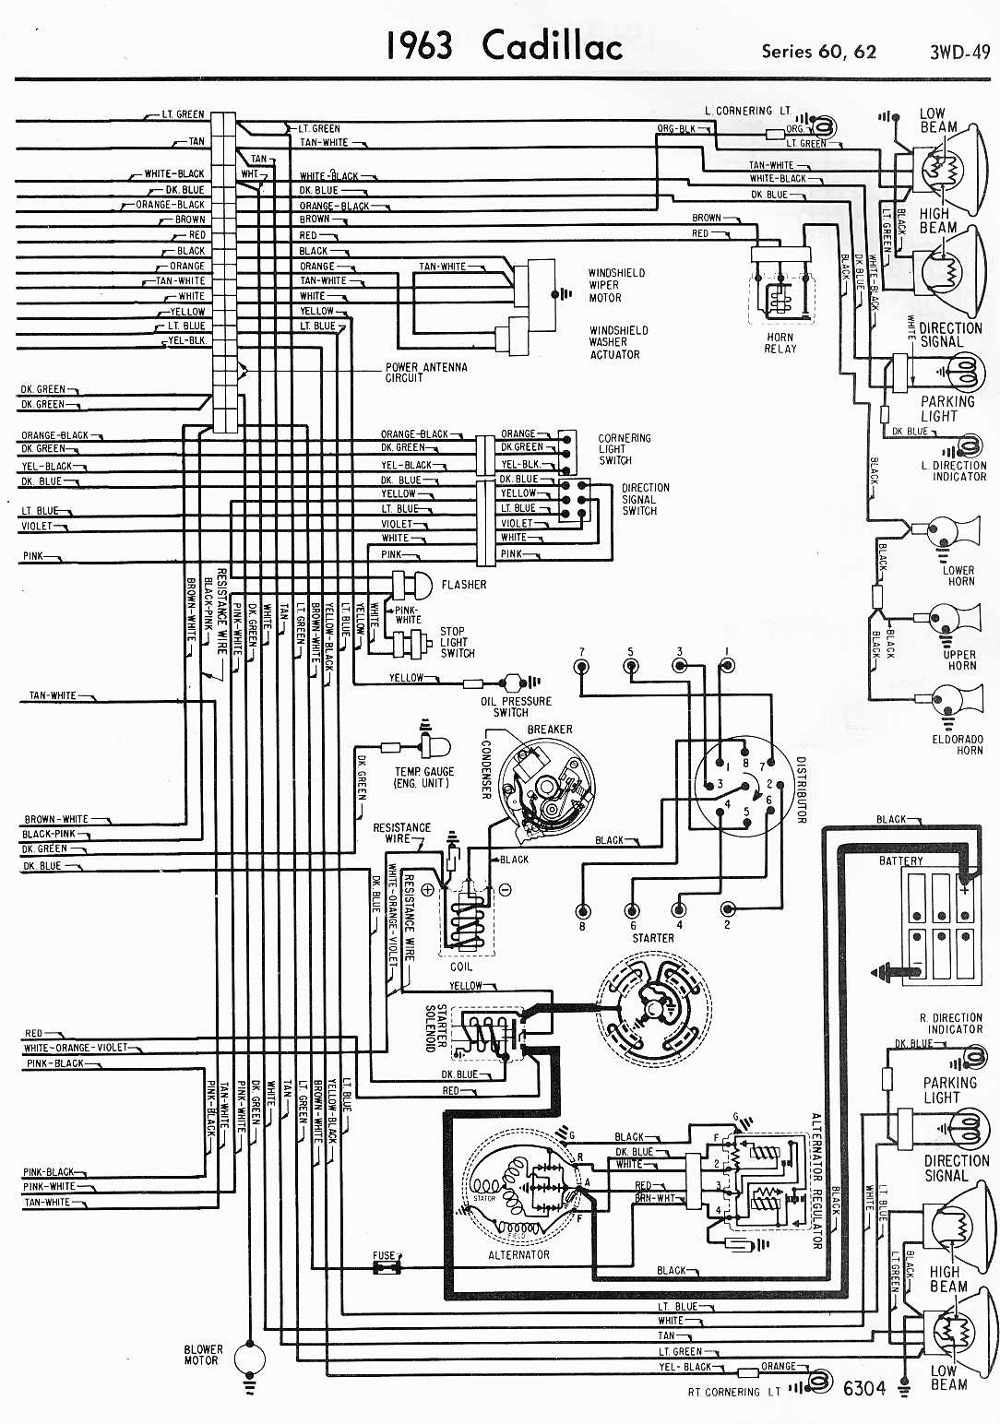 wiring diagrams schematics 1963 cadillac series 60 and 62 part 2 rh wiring diagram schematics blogspot com 1963 cadillac coupe deville wiring diagram 1962 Cadillac Vacuum Diagram